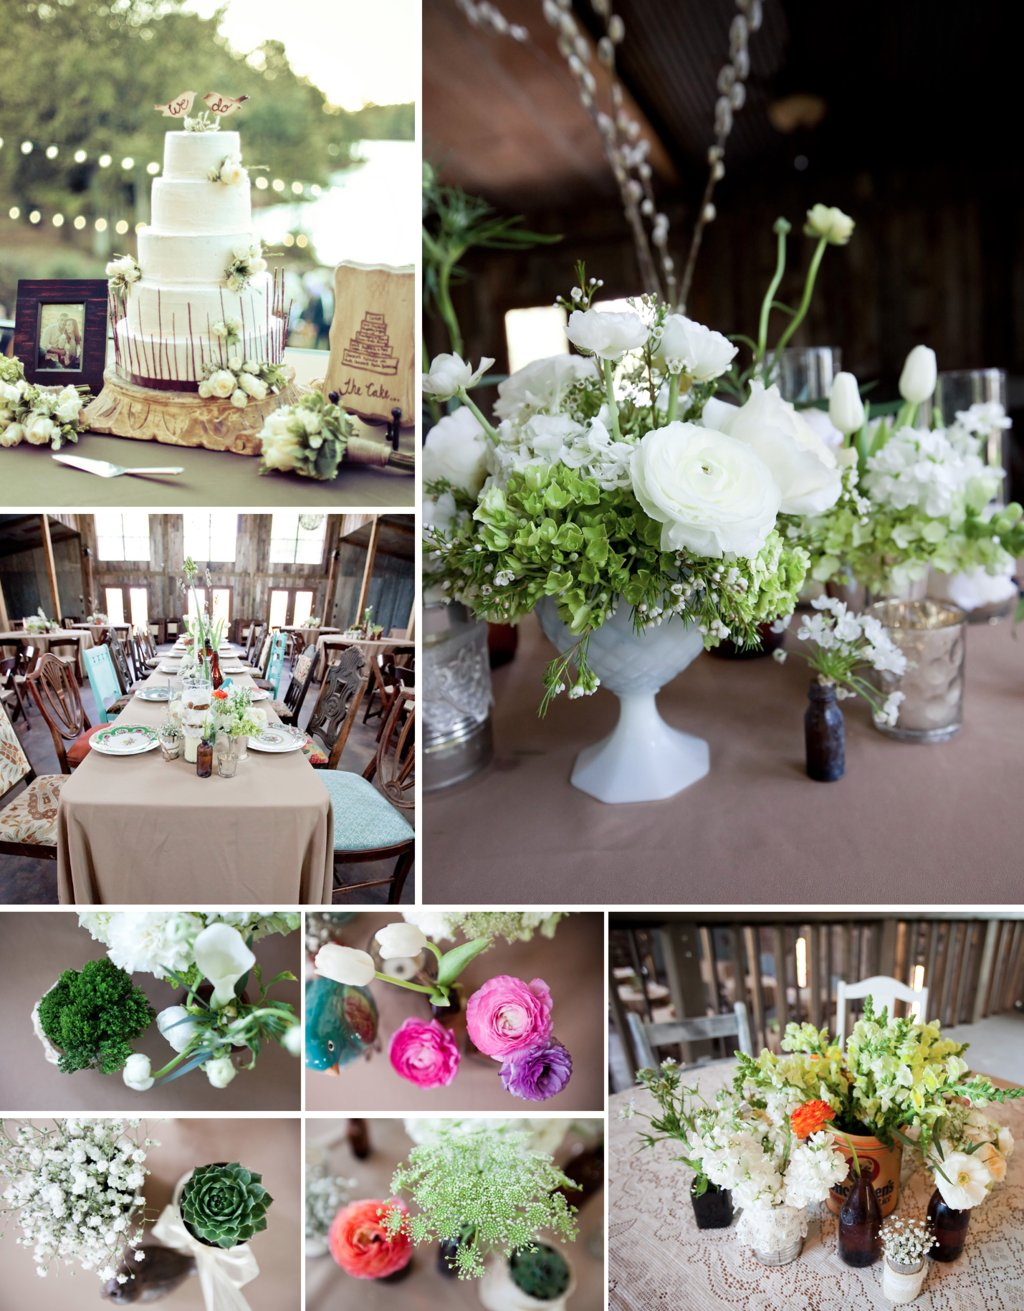 Rustic-ranch-wedding-inspiration-outdoor-weddings-theme-and-decor-2.full